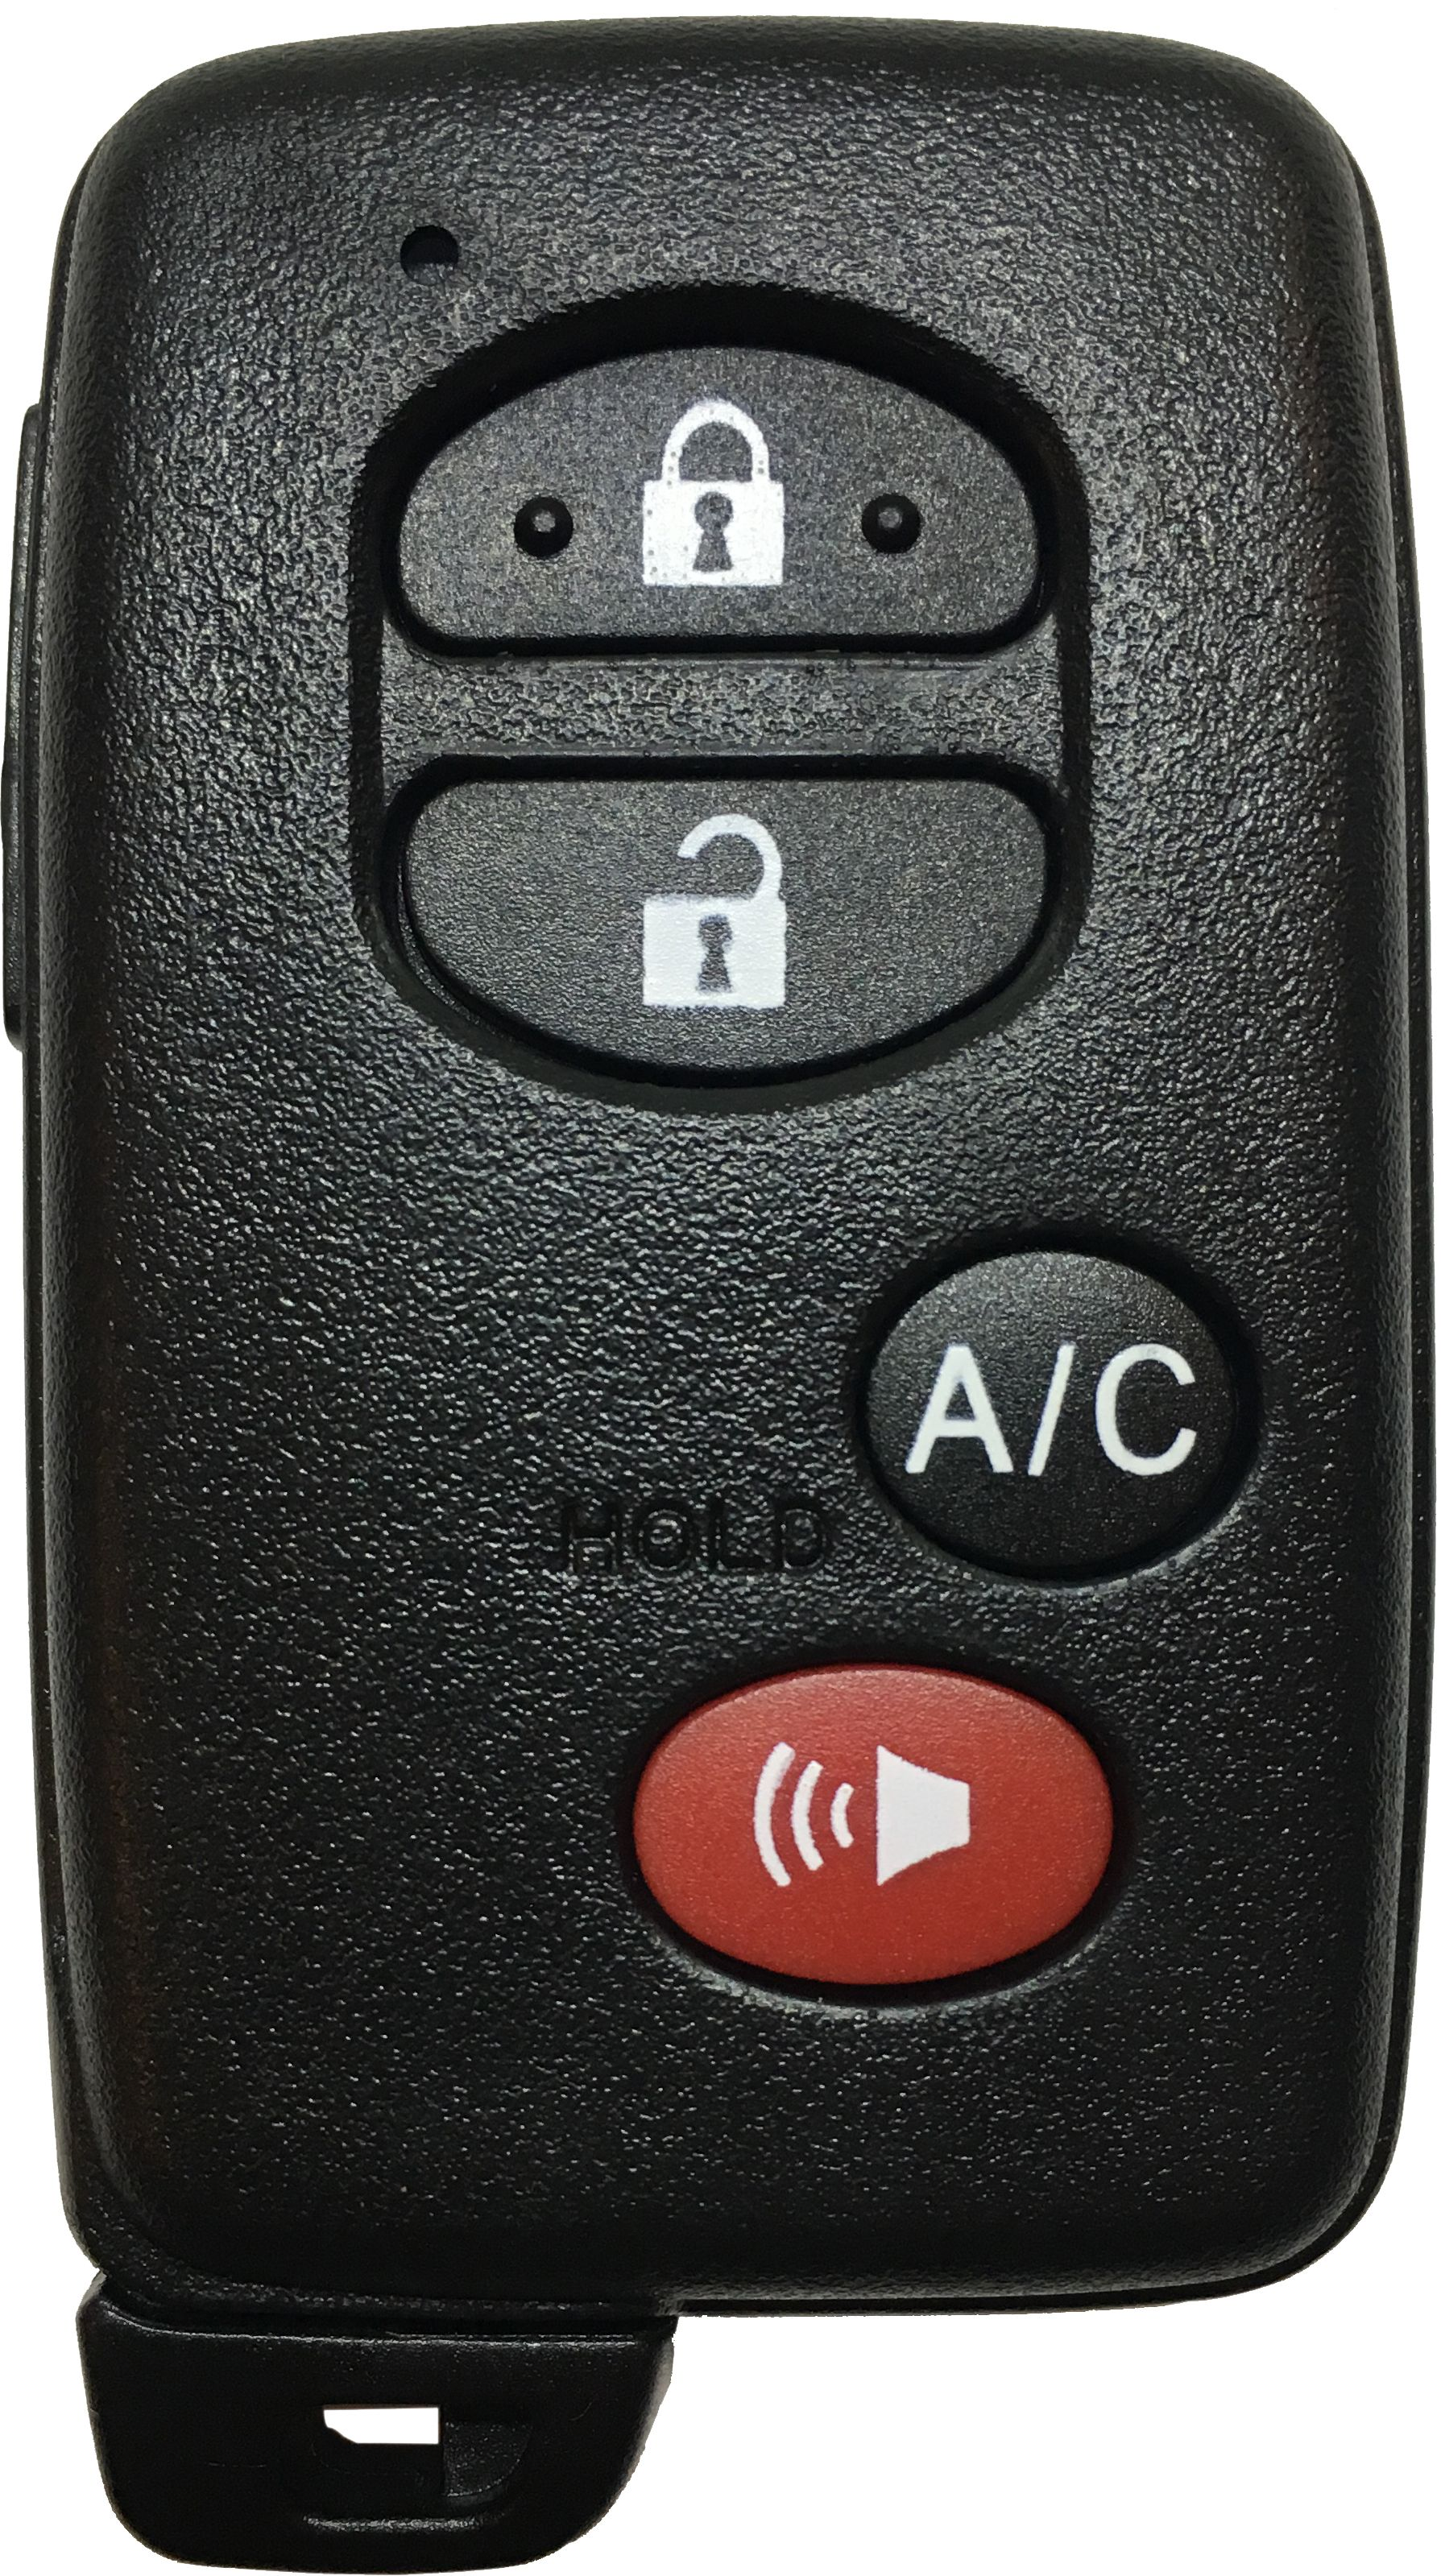 FCC ID: M3N5WY72XX, M3N65981772 OEM Electronic 6-Button Remote Head Key Fob Compatible With 2004-2007 Chrysler Town /& Country